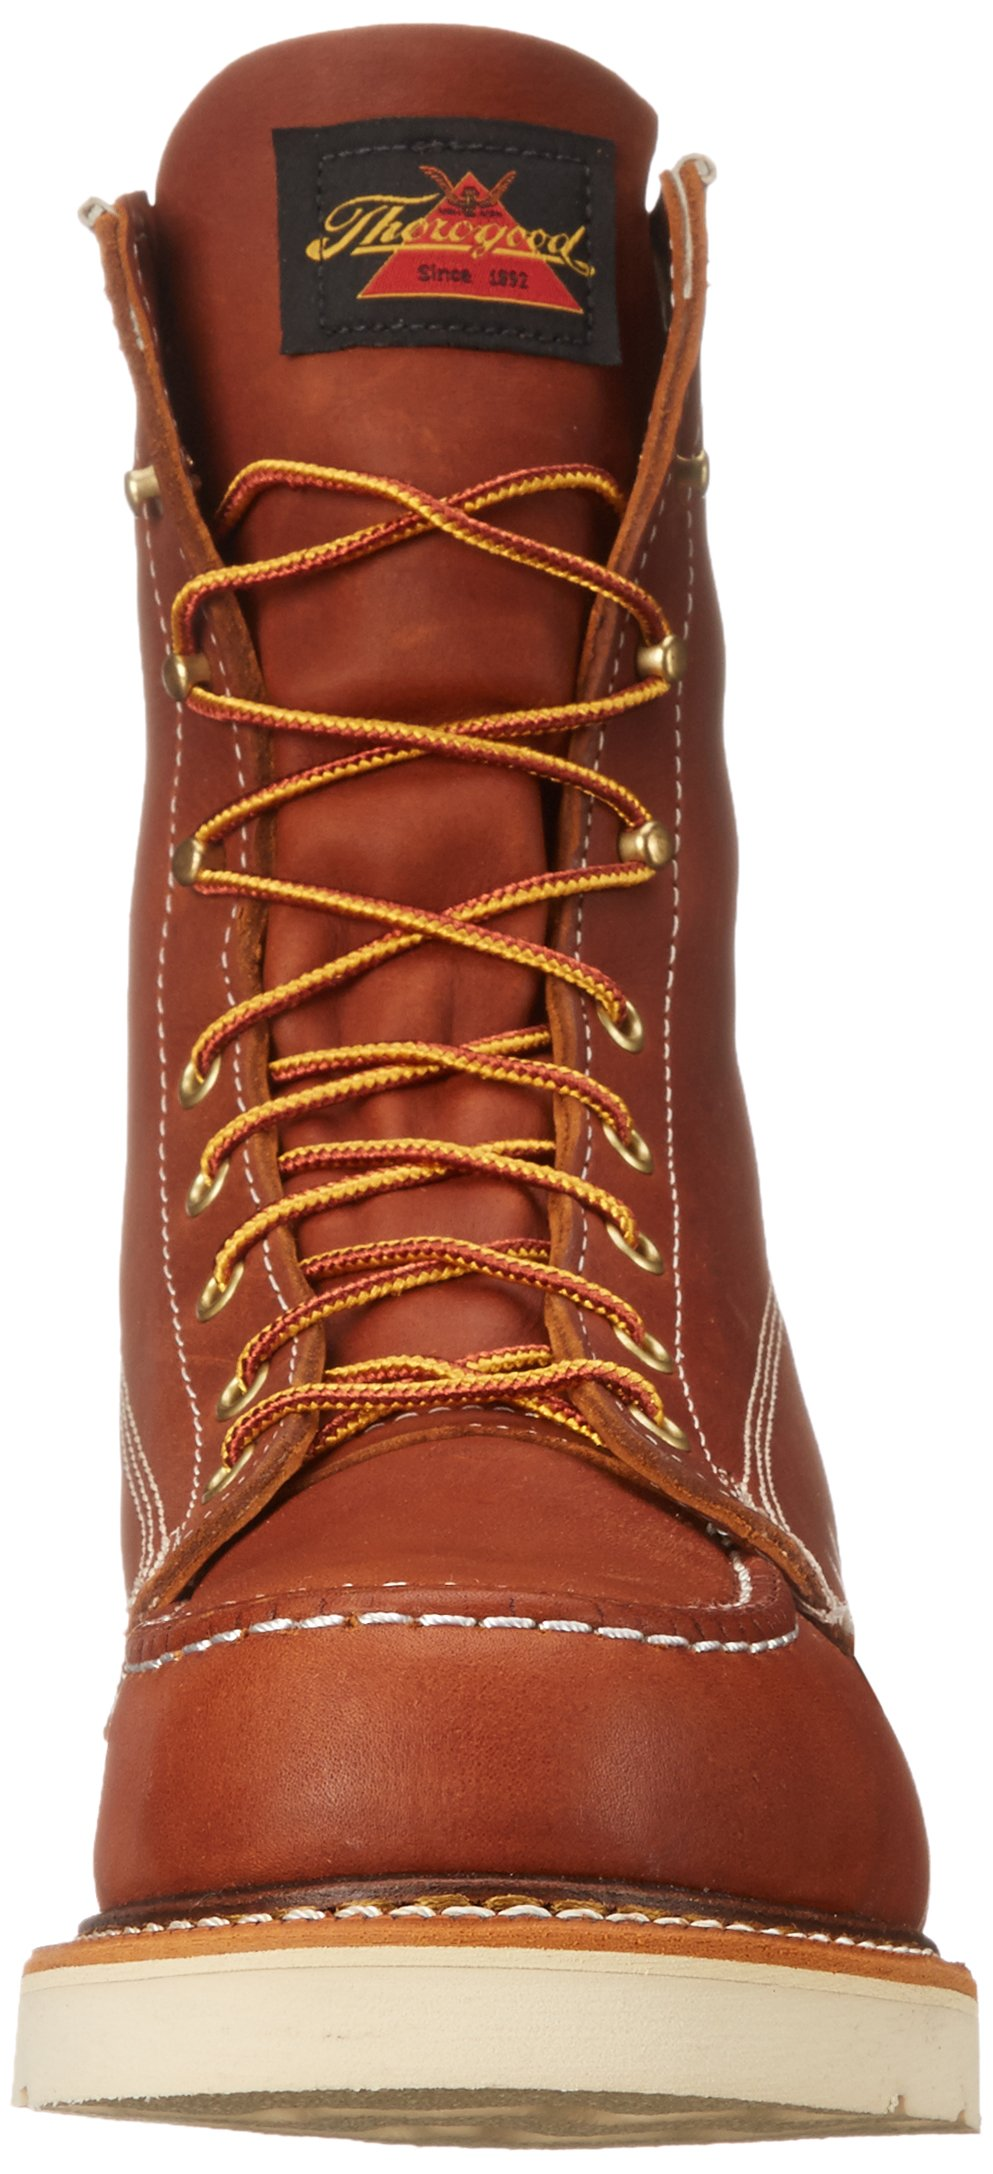 Thorogood Heritage 8'' Safety Toe Work Boot, Tobacco Oil Tanned, 10 EE US by Thorogood (Image #4)